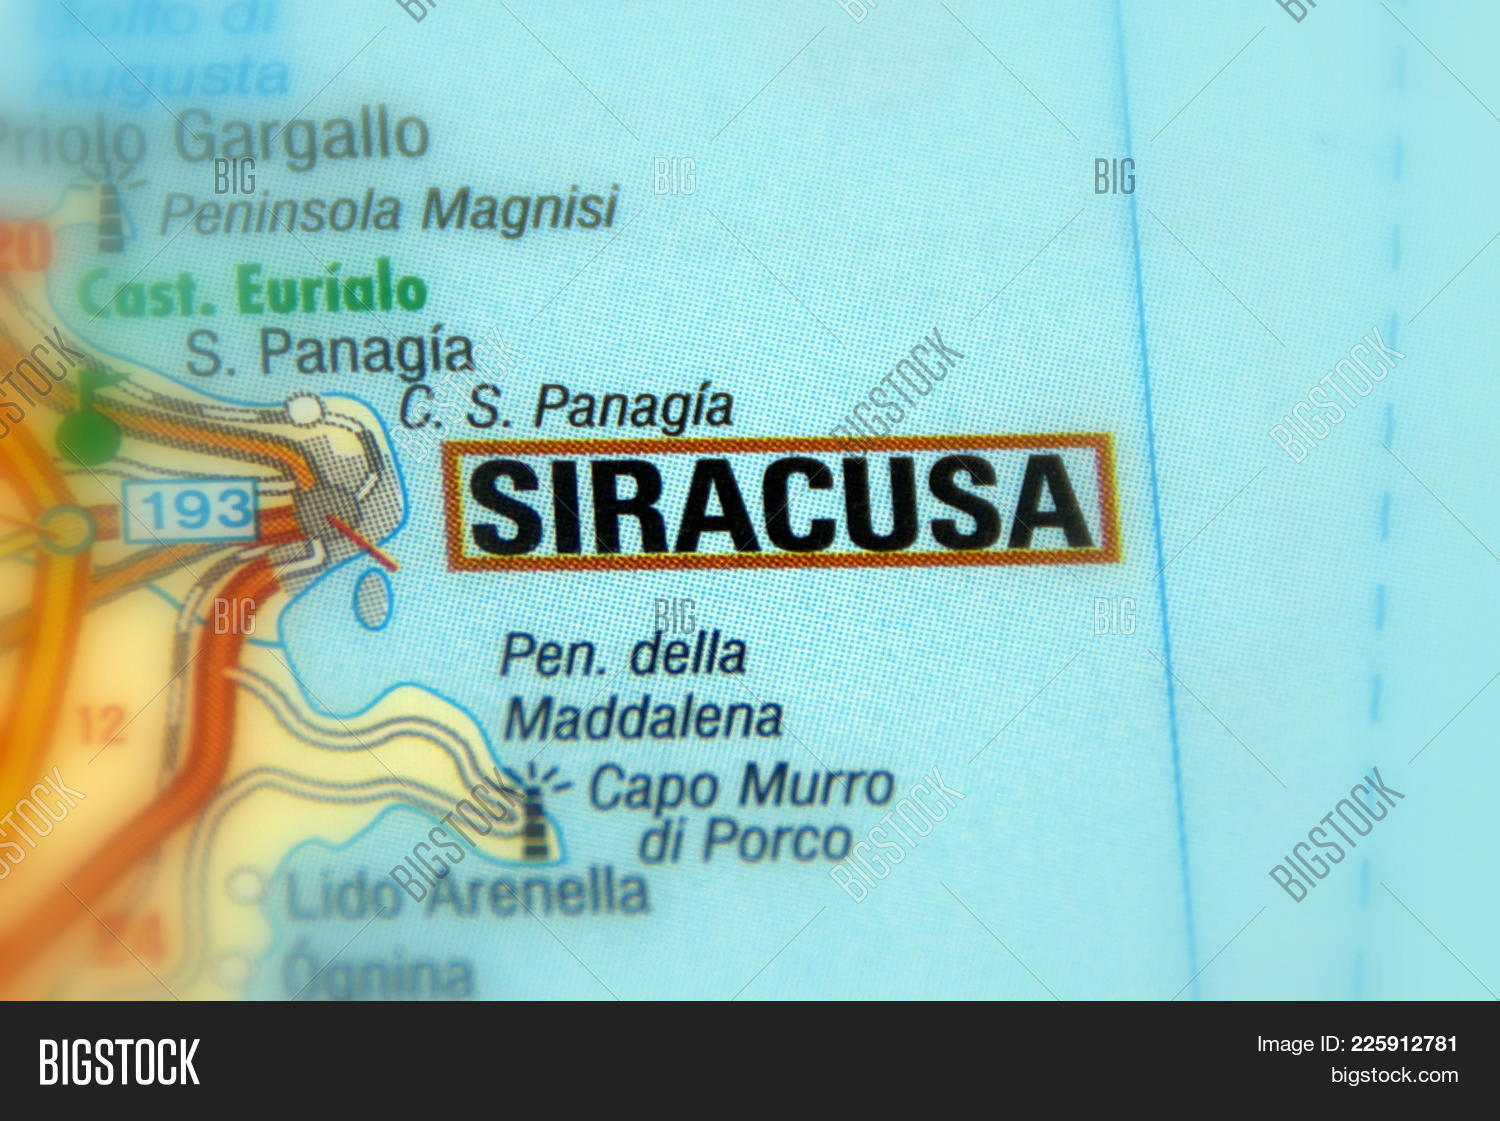 🔥 Siracusa, The Capital Of The Province Of Syracuse, Sicily ... on zama europe map, maine europe map, cordoba europe map, sicily island location on map, macedonia europe map, sparta europe map, italy europe map, syracuse in europe, dunkirk europe map, nicaea europe map, genoa europe map, ephesus europe map, sicily europe map, troy europe map, bologna europe map, ithaca europe map, byu europe map, palermo europe map, iberian peninsula europe map, constantinople europe map,